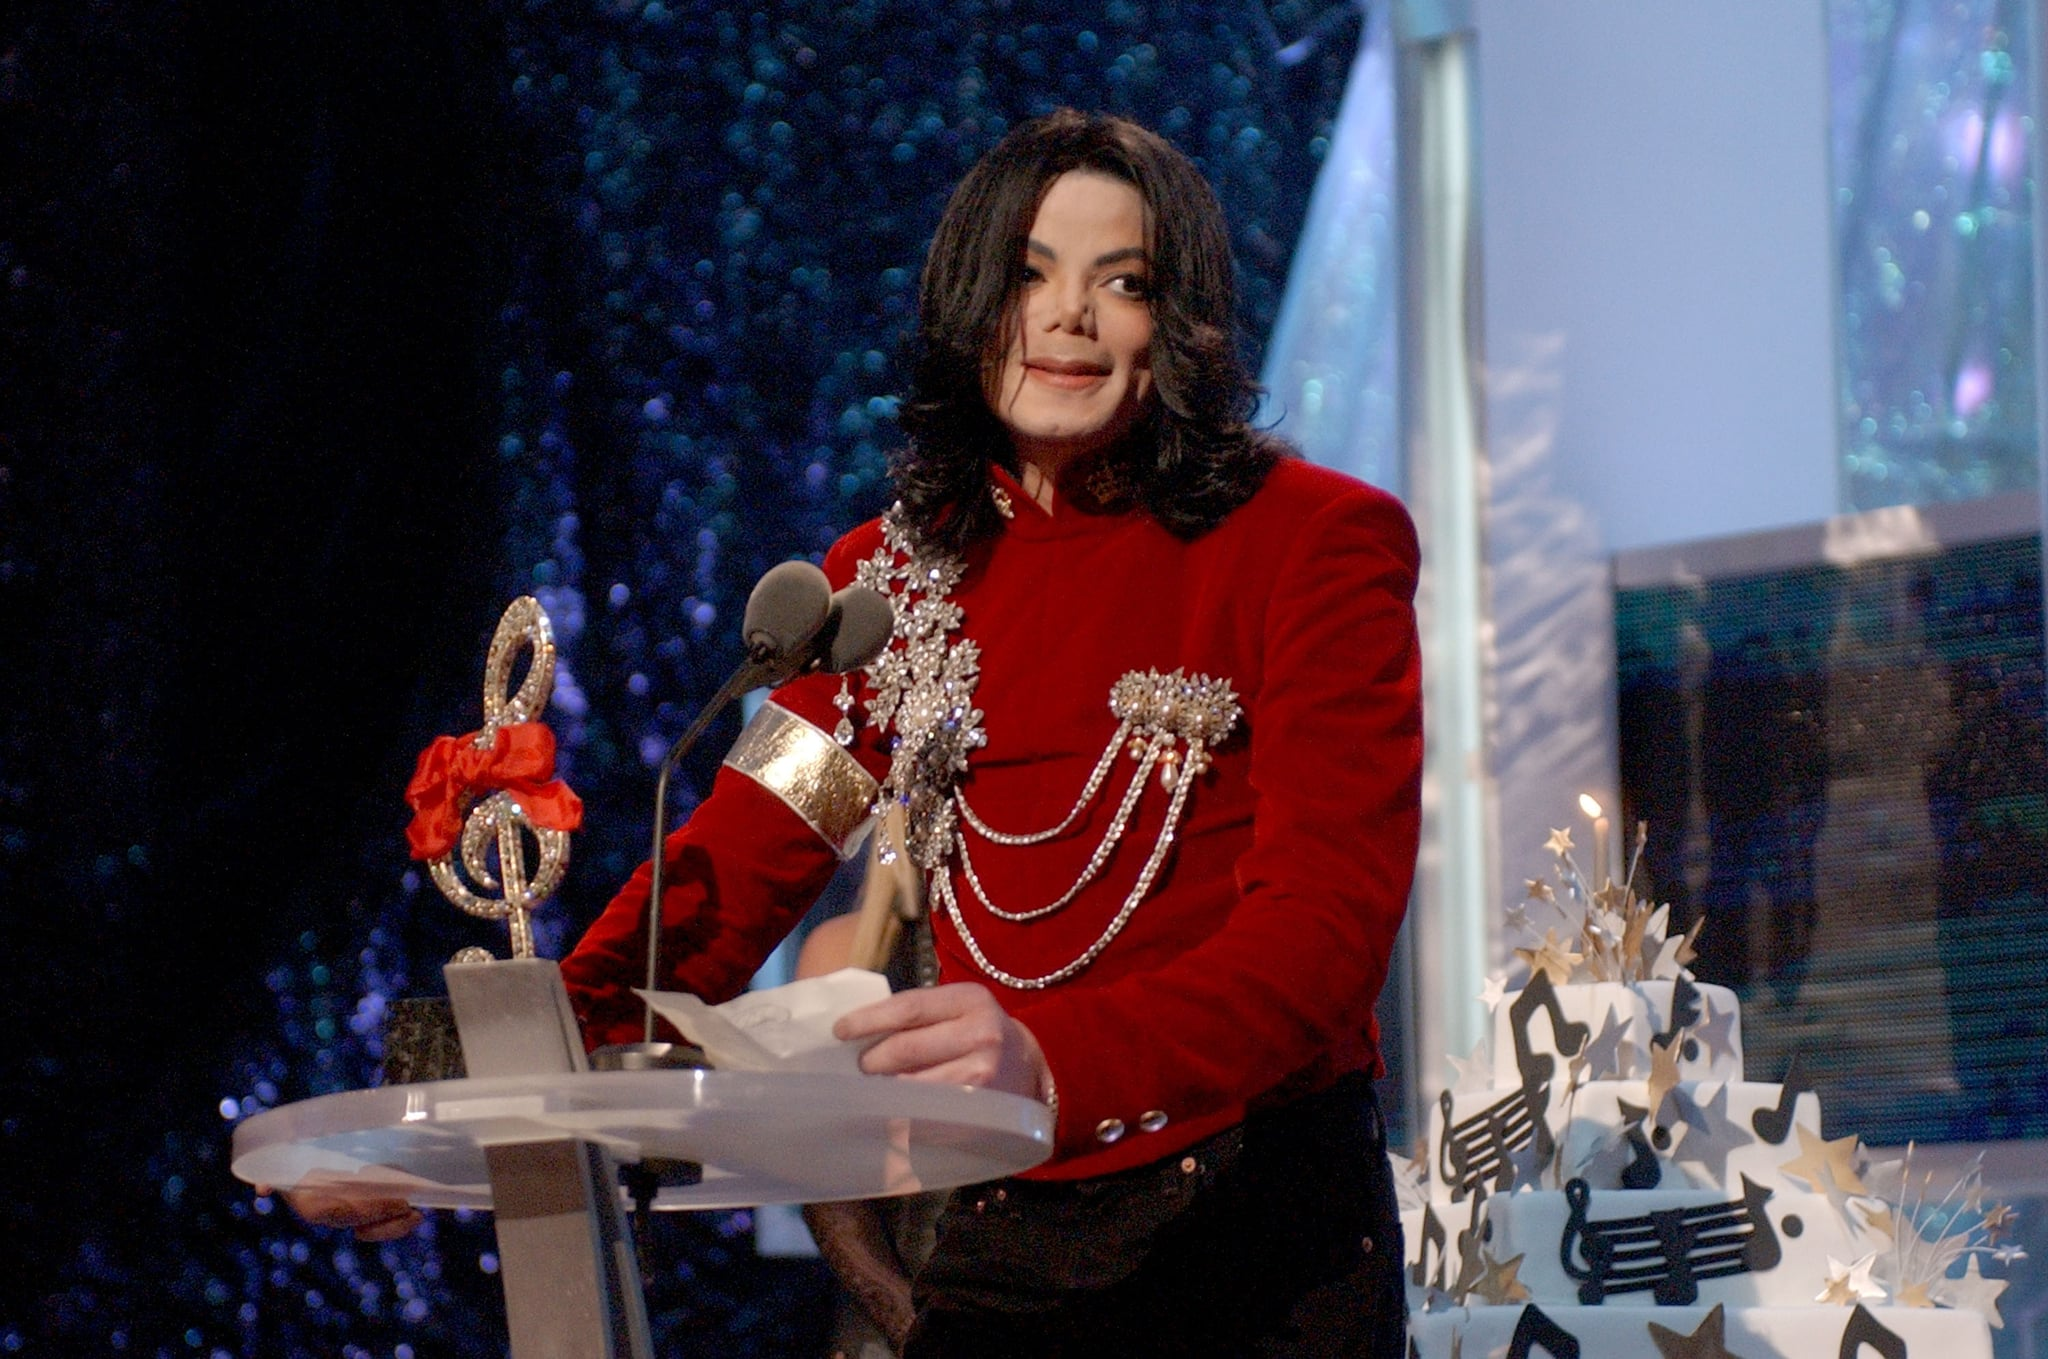 Michael Jackson speaks after Britney Spears presented Michael with a birthday cake at the 2002 MTV Video Music Awards (Photo by KMazur/WireImage)